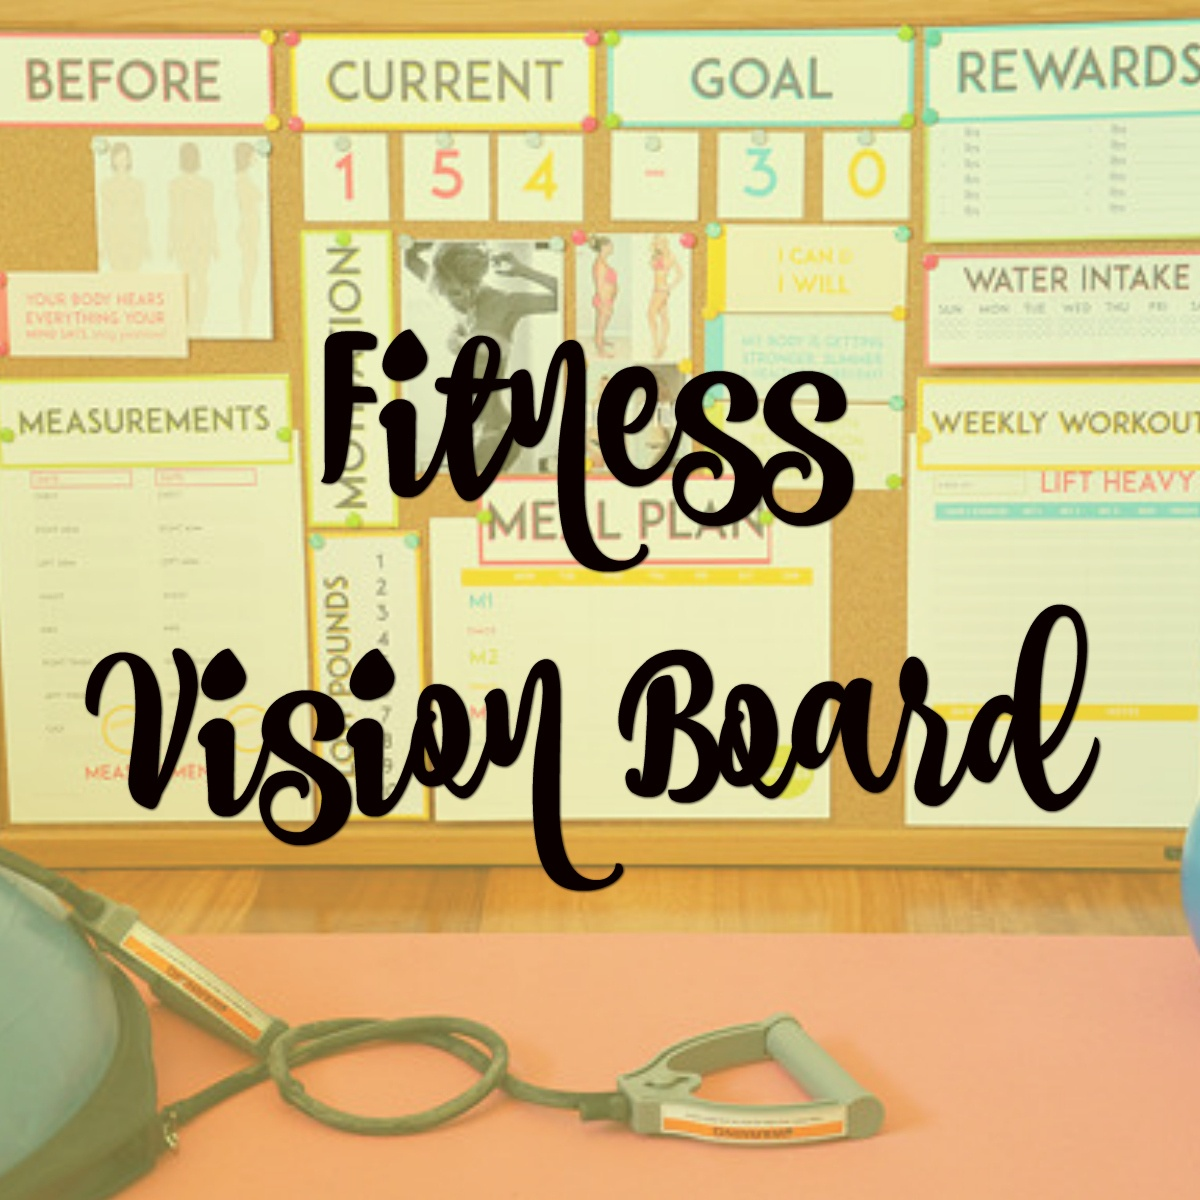 Weight Loss – Vision Board Printable - Free Weight Loss Vision Board Printables